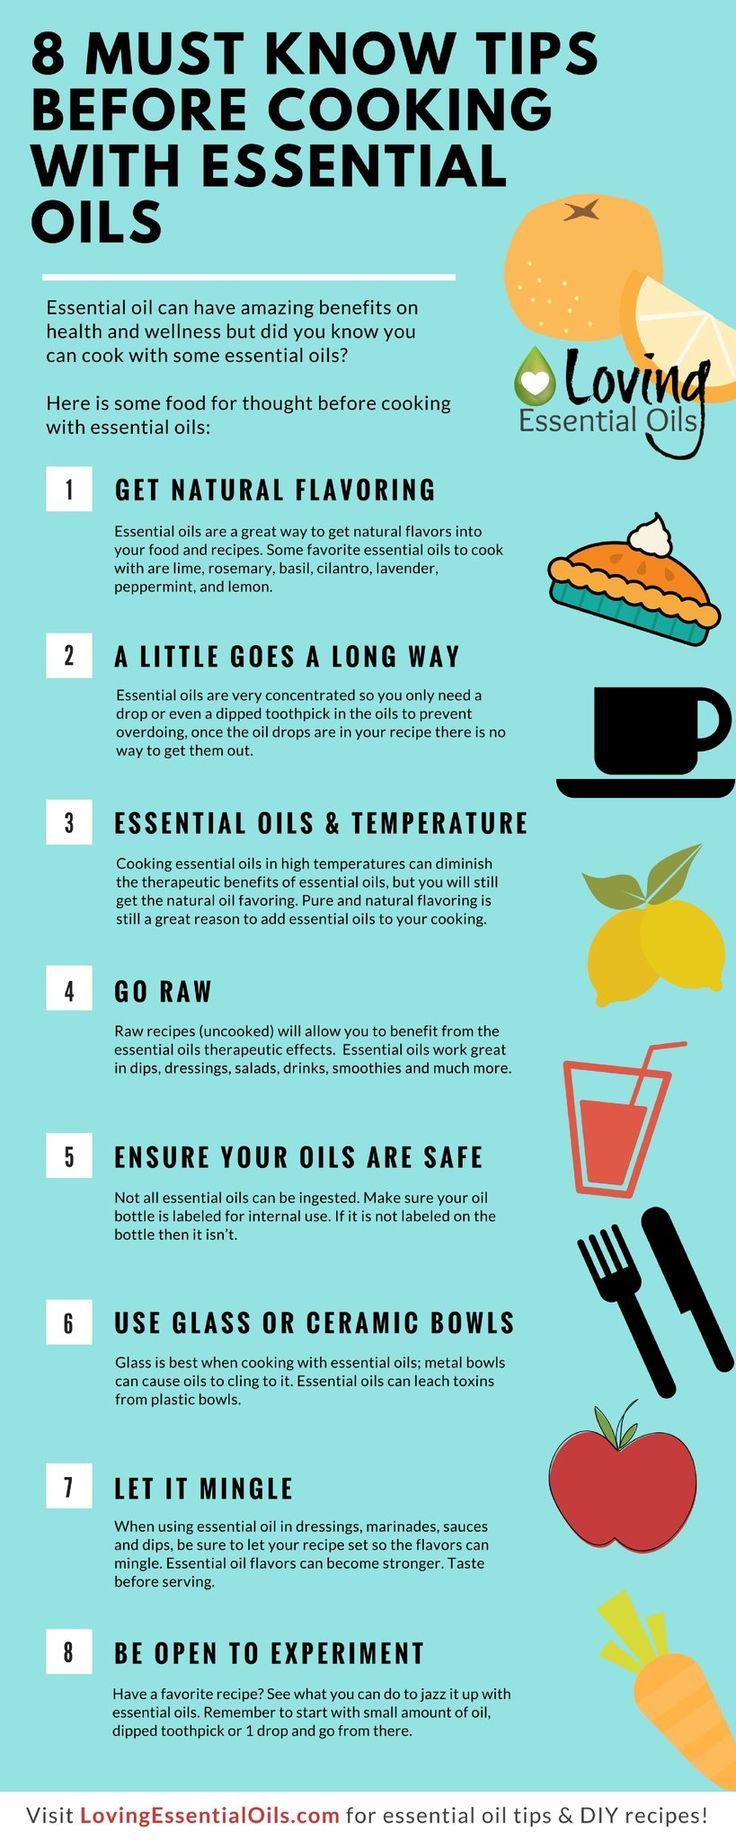 How to Learn and Improve Essential Cooking Skills